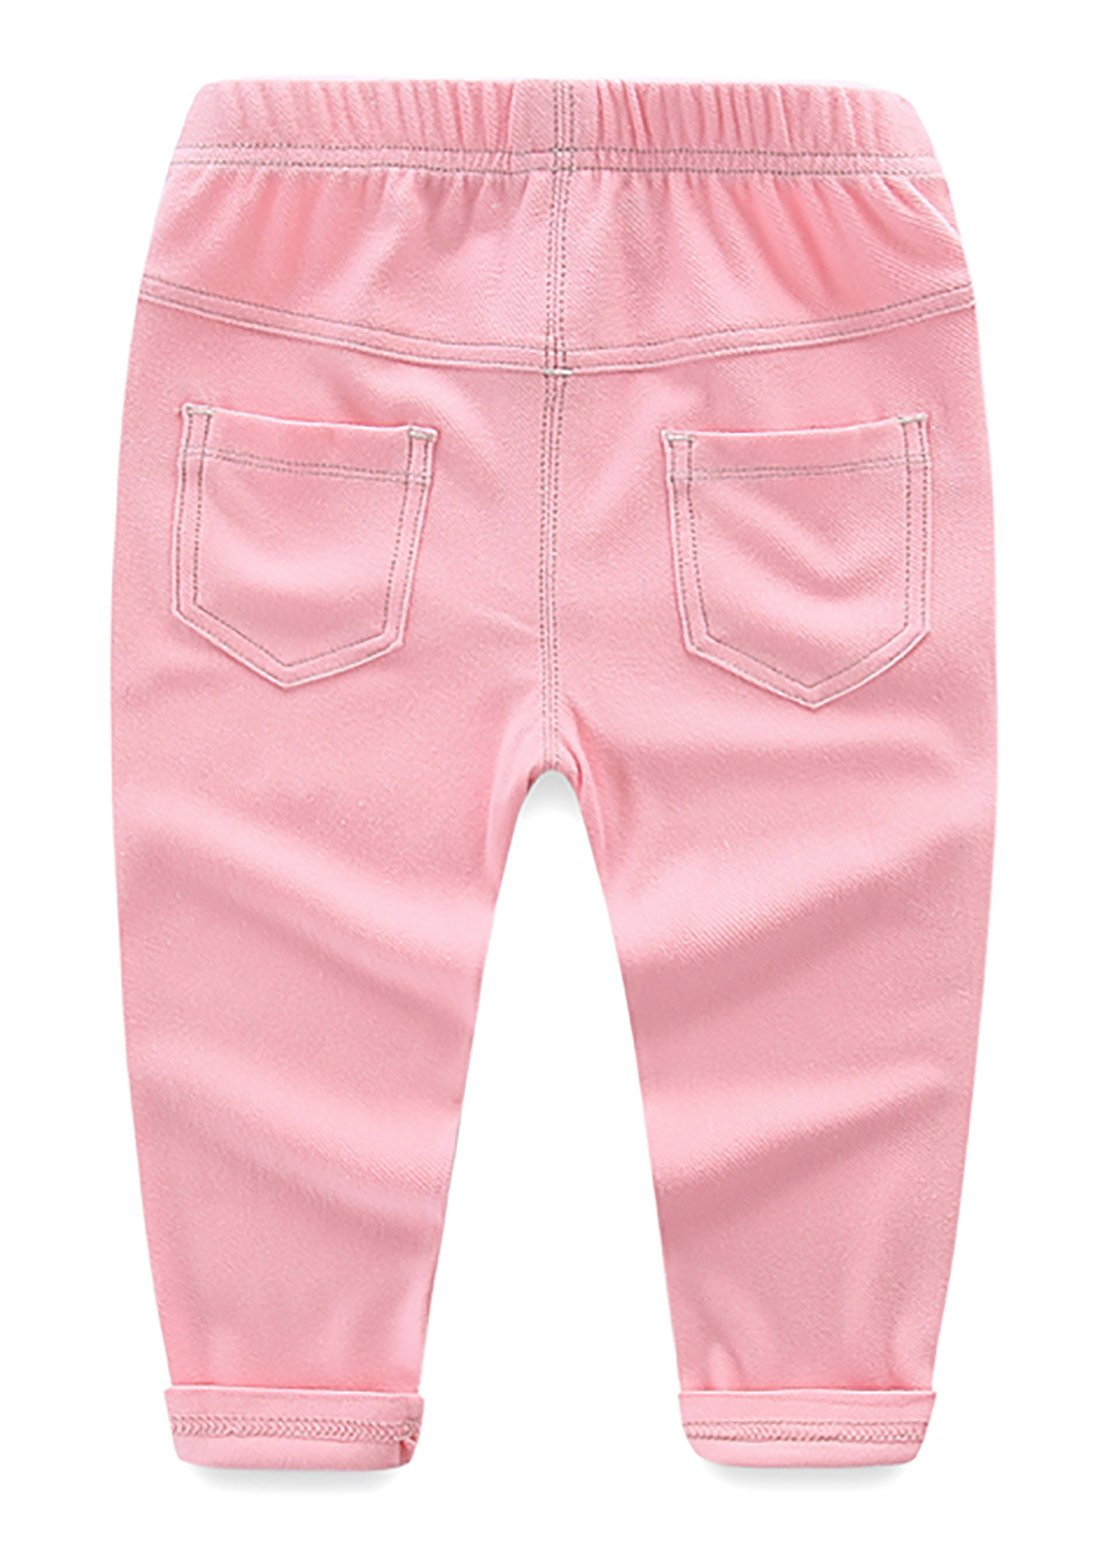 Baby Girls Denim Jeans Stretchy Leggings Pants Cotton Breathable Trousers Elastic Waist Summer Pants for Baby Boys Girls 0-6 Months Pink by MMWORM (Image #2)